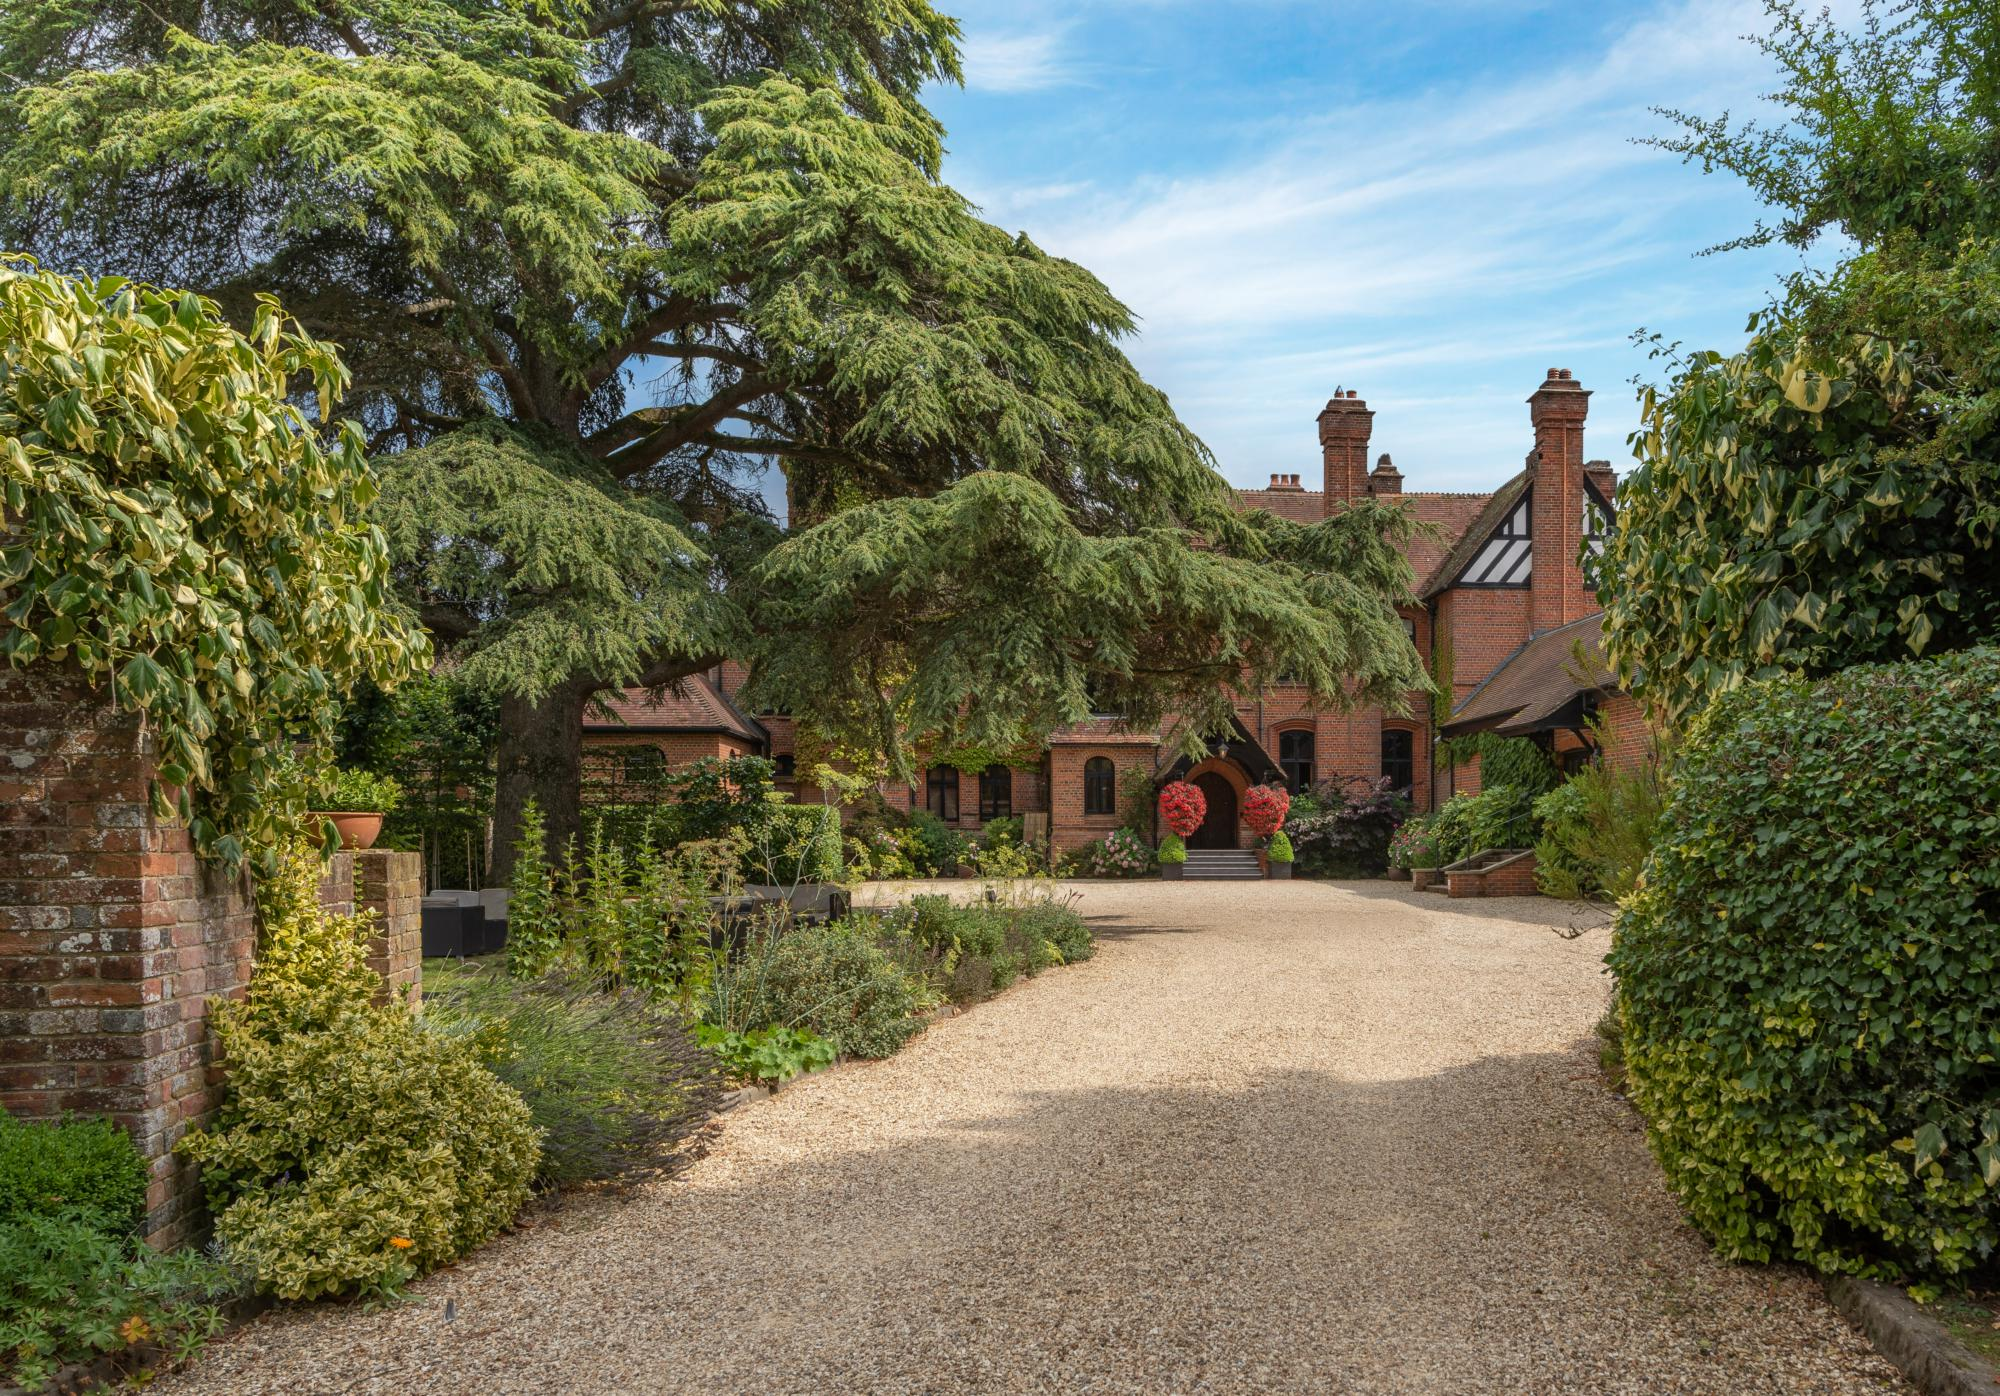 Hotels in Hampshire holidays at Cool Places